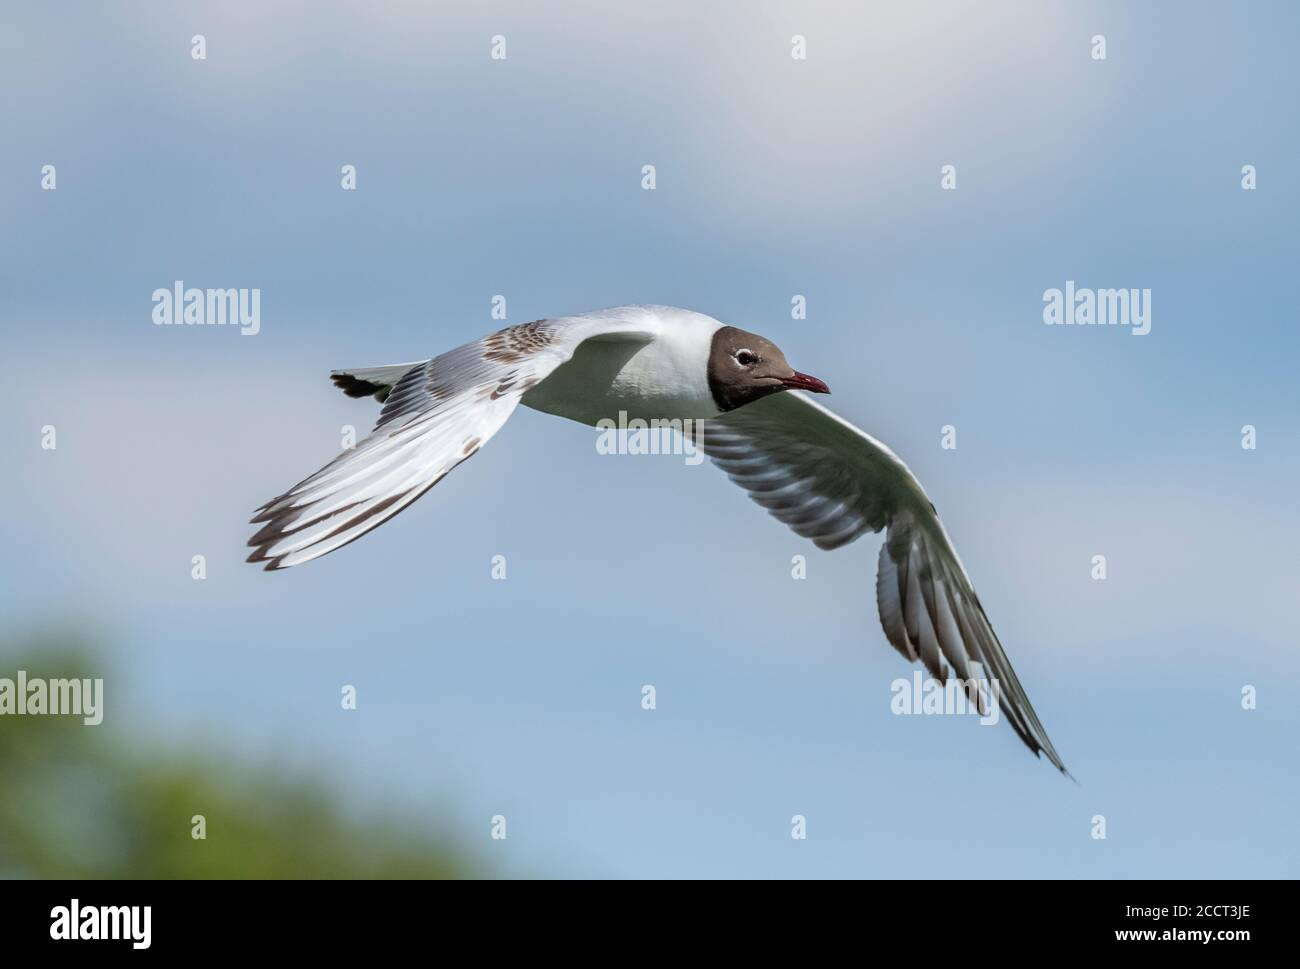 Adult Black-headed gull, Chroicocephalus ridibundus, in flight, during breeding season. Stock Photo